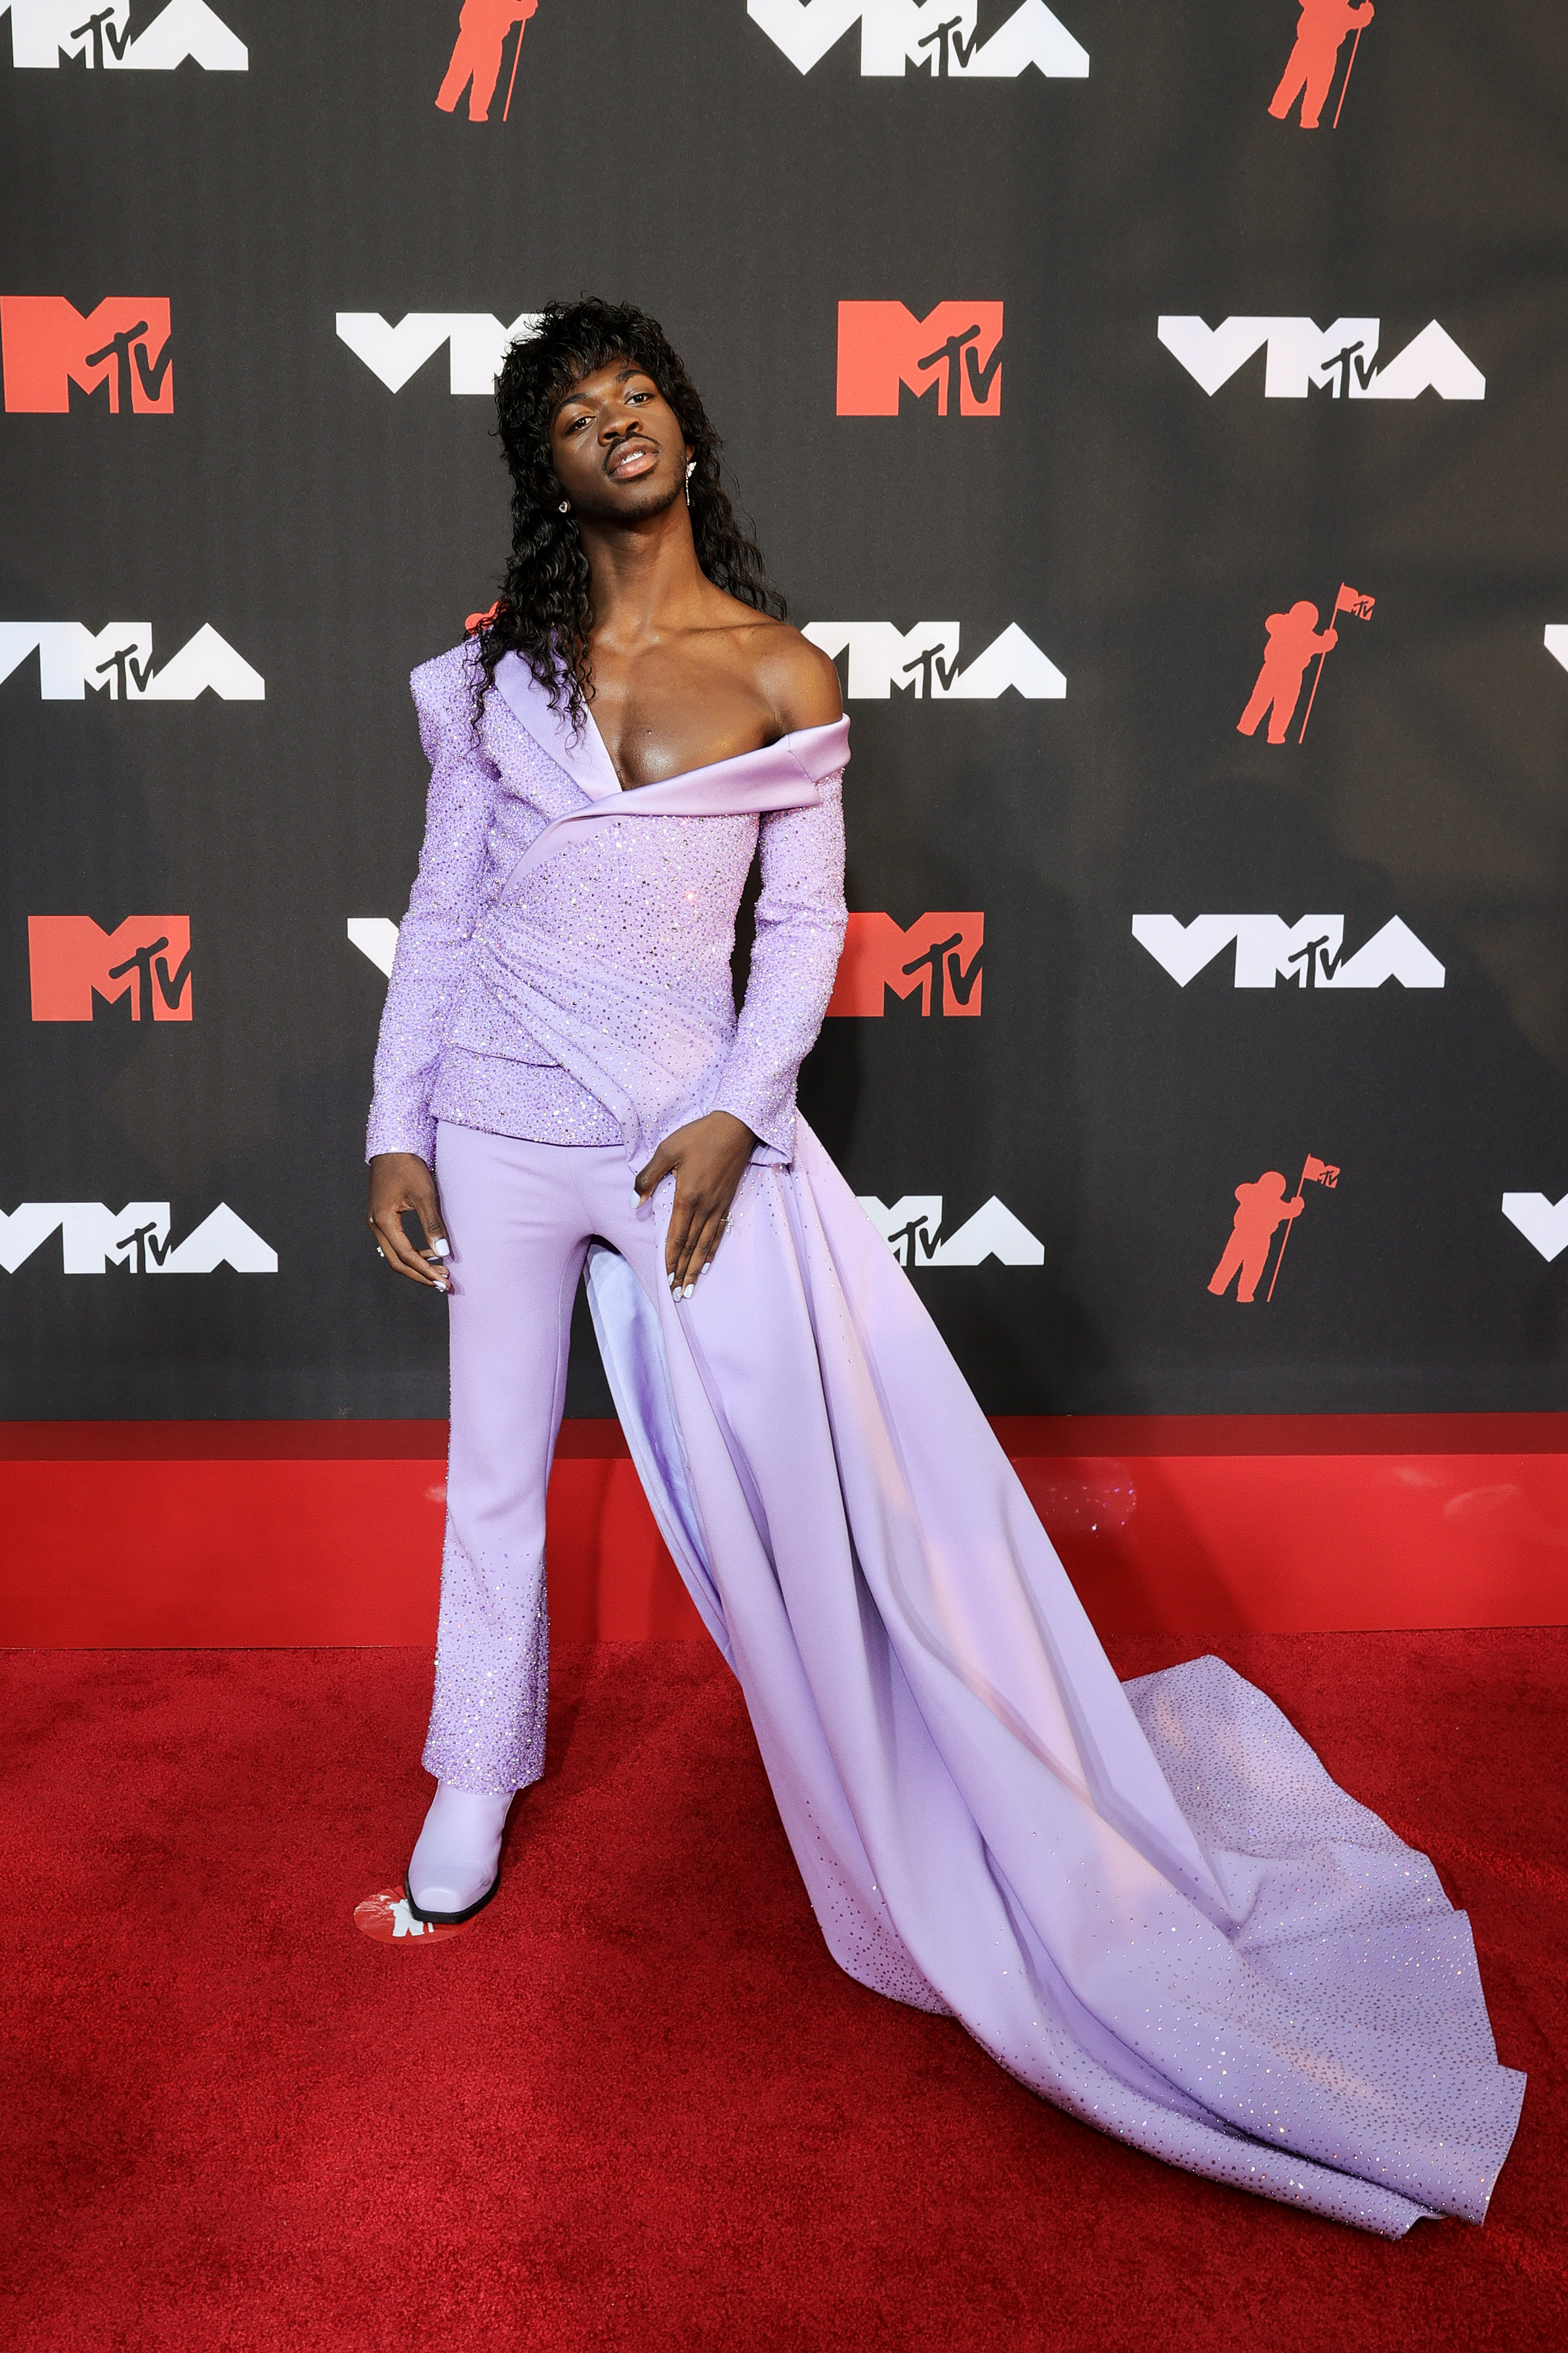 Lil Nas X at an event for 2021 MTV Video Music Awards (2021)